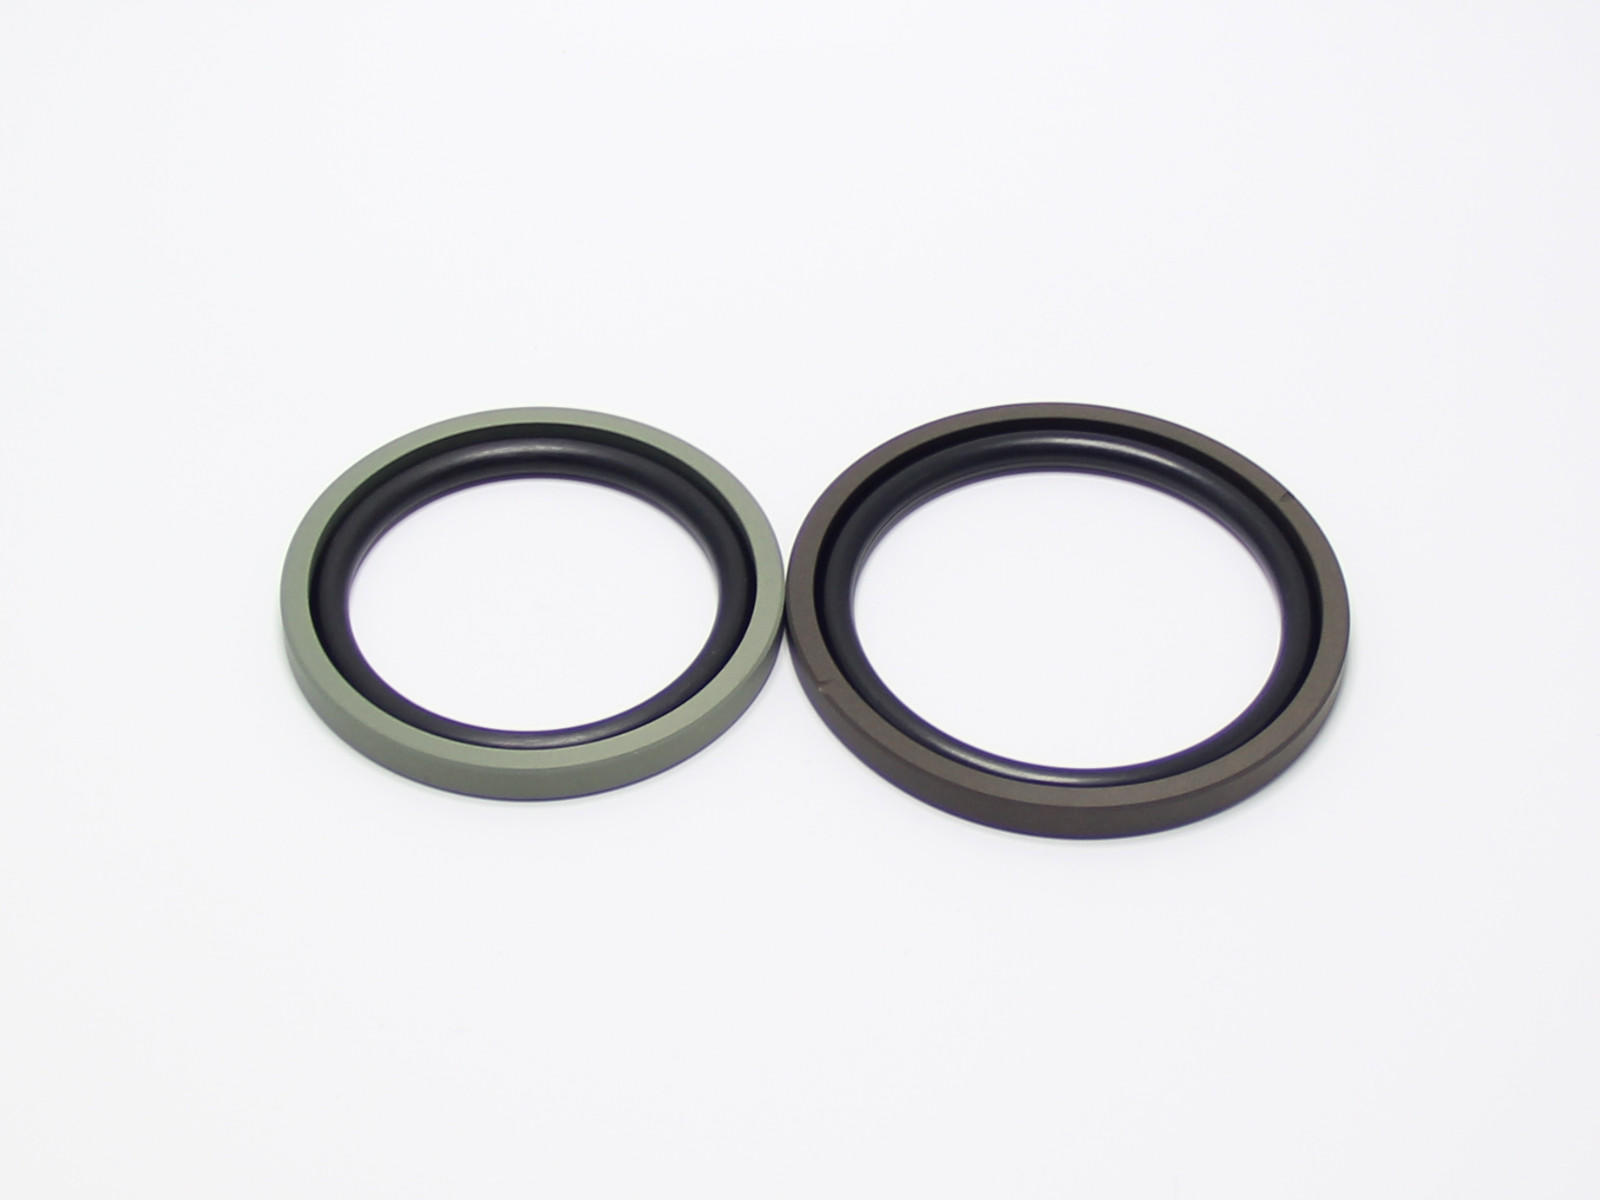 DSH double acting hydraulic piston seals suppliers design for coal mining machinery